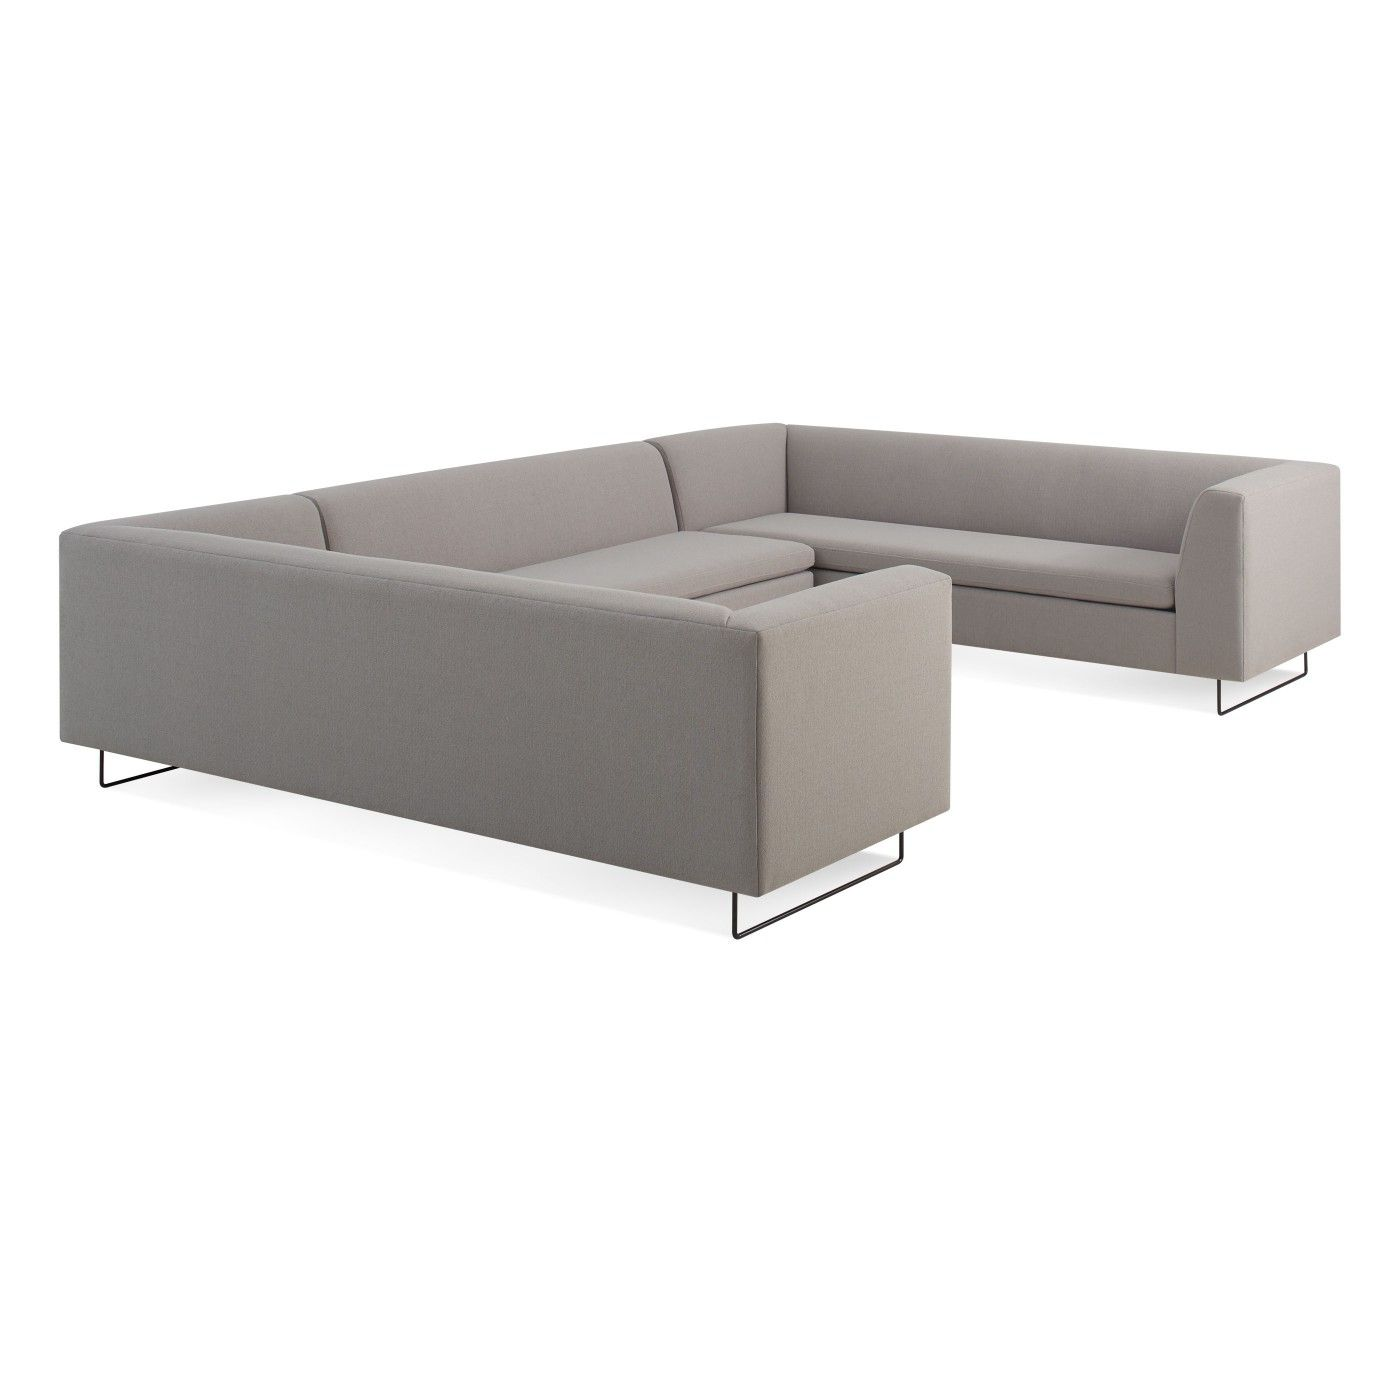 Bonnie And Clyde U Shaped Sectional Sofa In 2018 Home Ideas